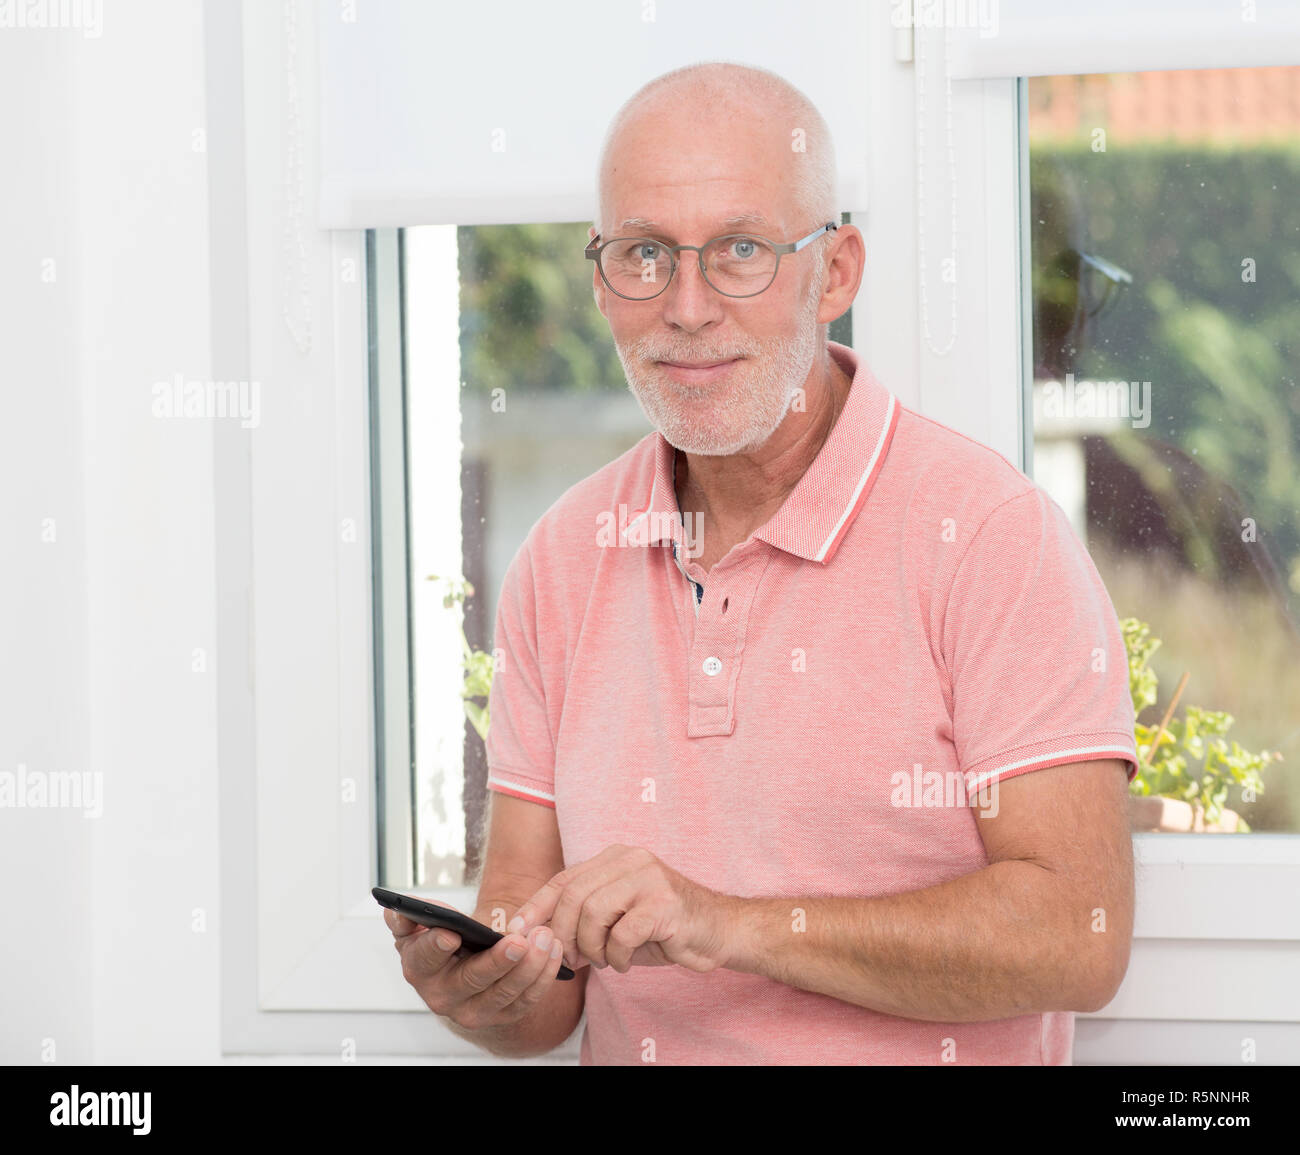 Mature man with eyeglasses typing message on smartphone Stock Photo